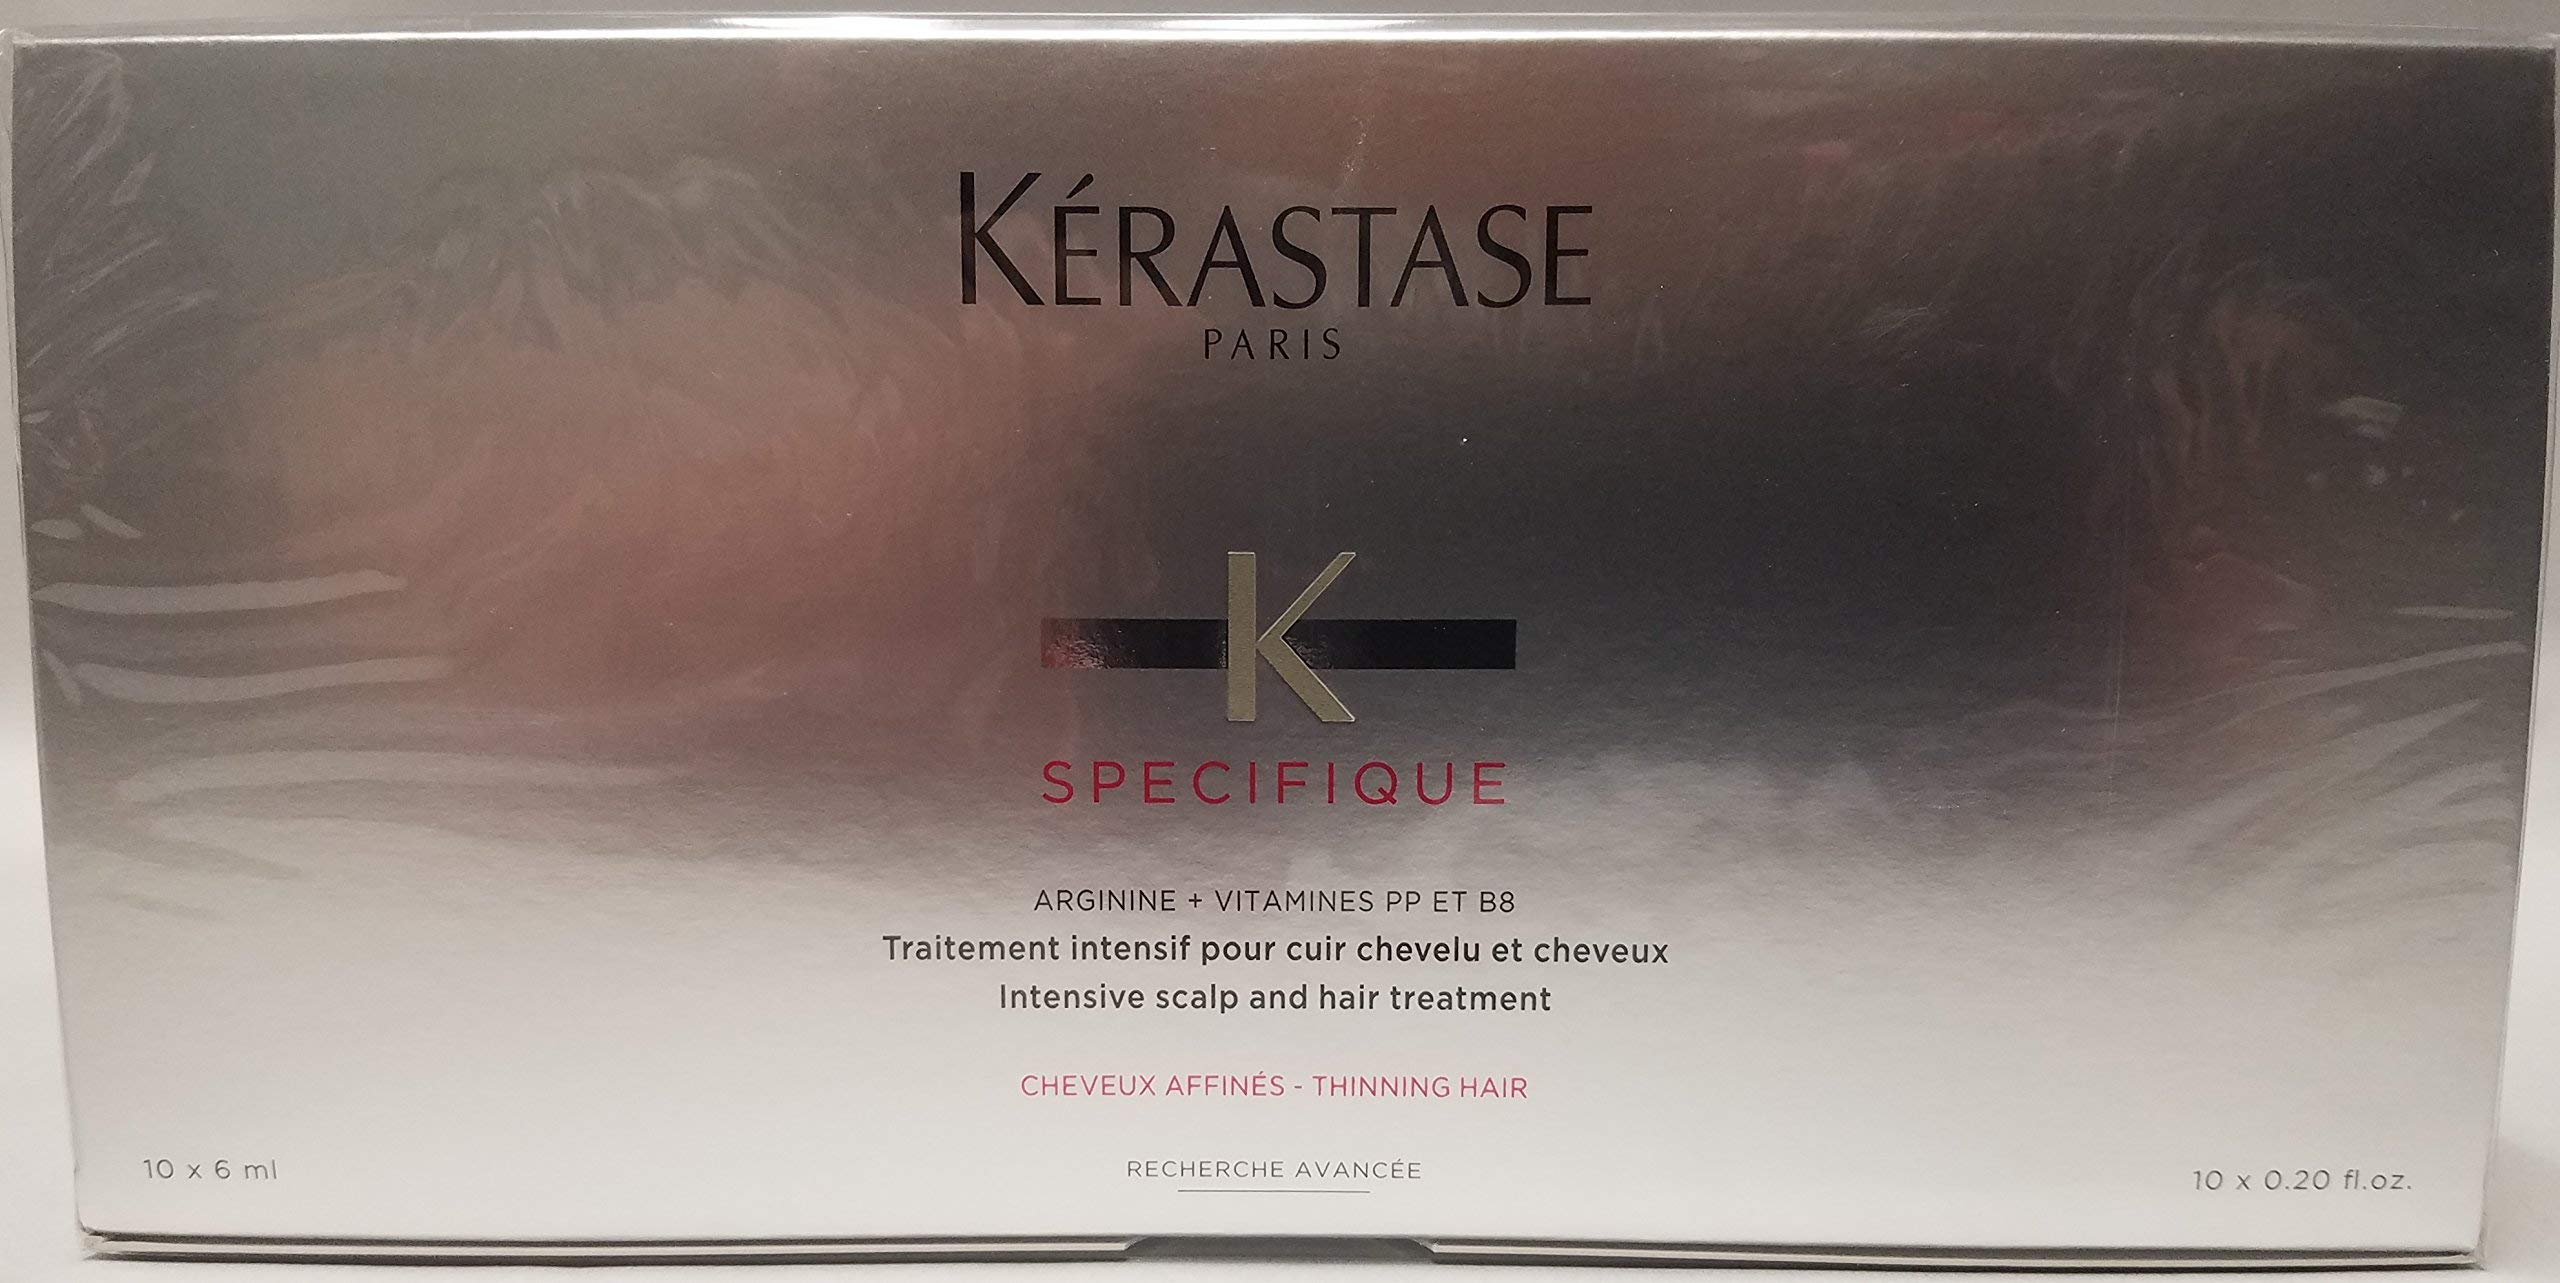 Kerastase Specifique Intensive Scalp Treatment (For Thinning Hair, Prone to Hair Loss) 10x6ml/0.2oz by KERASTASE